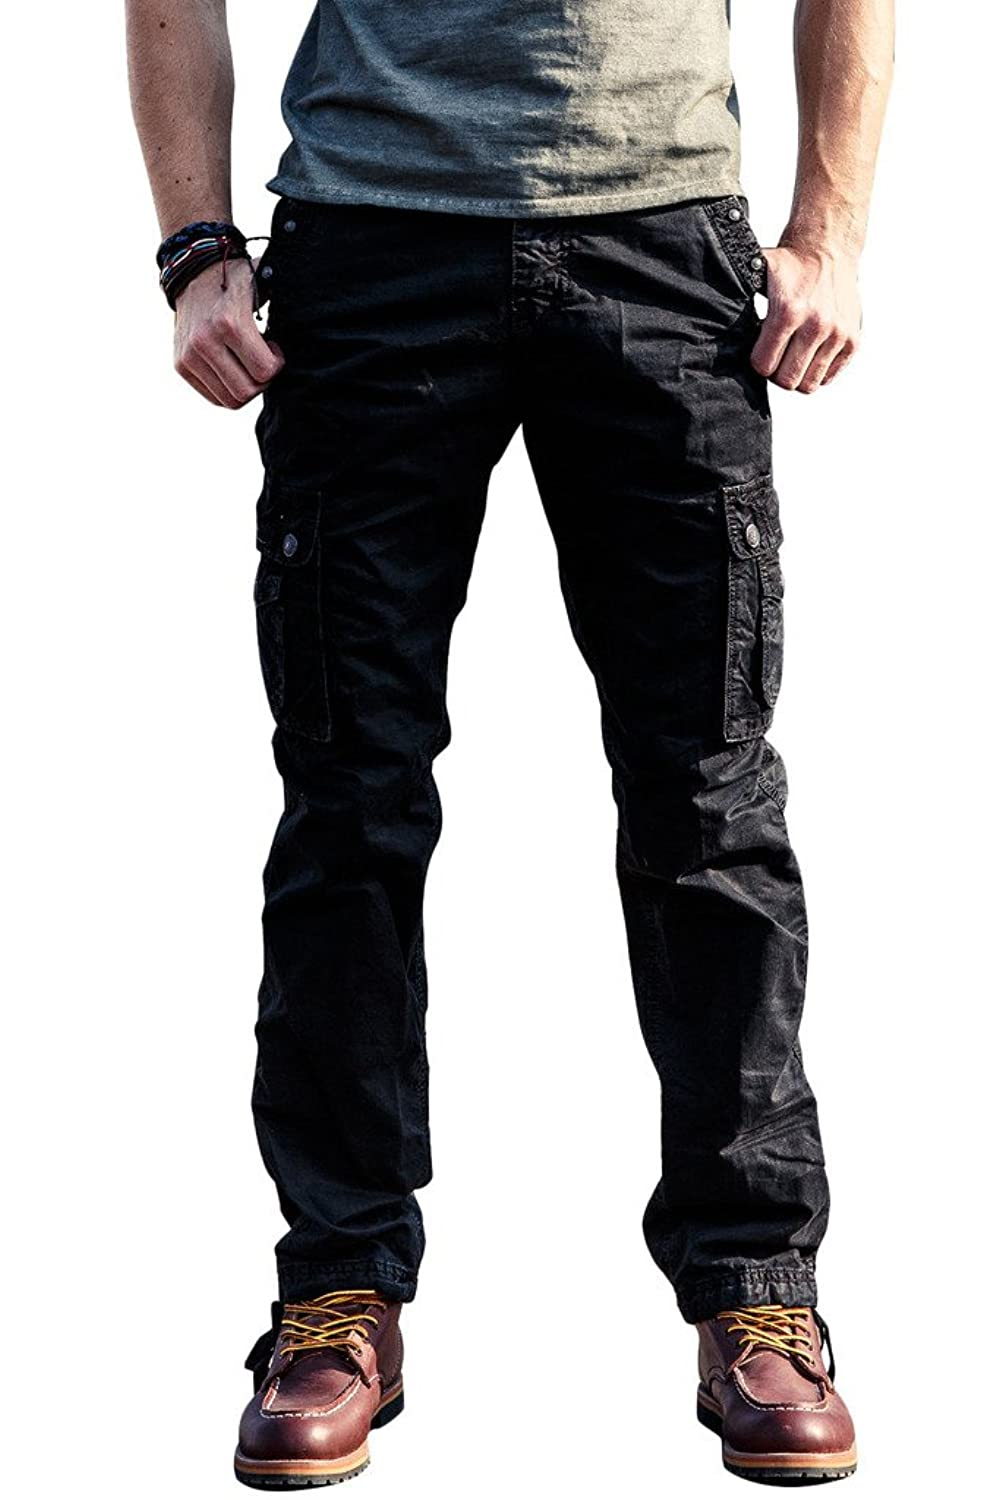 100% Cotton Wild Cargo Pants for Mens Relaxed-fit Casual Pants Trousers with Phone Pocket by INFLATION